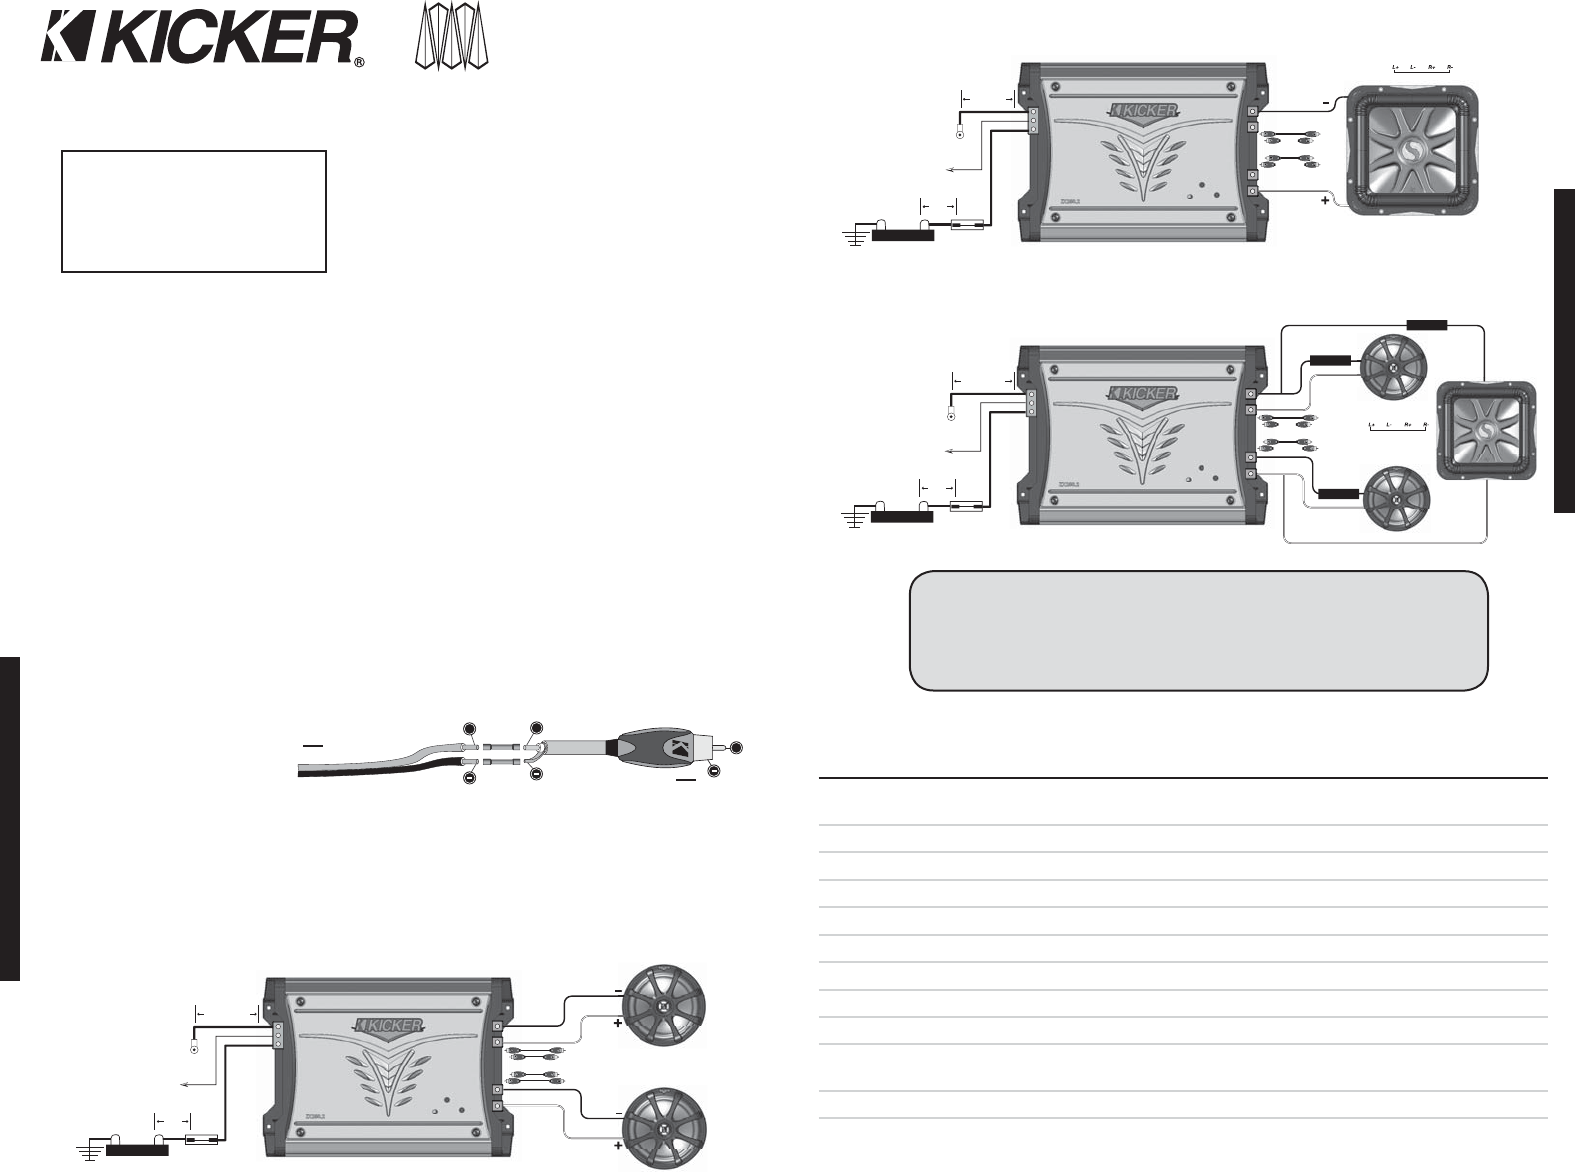 kicker kisl wiring diagram ceiling light zx350 4 29 images